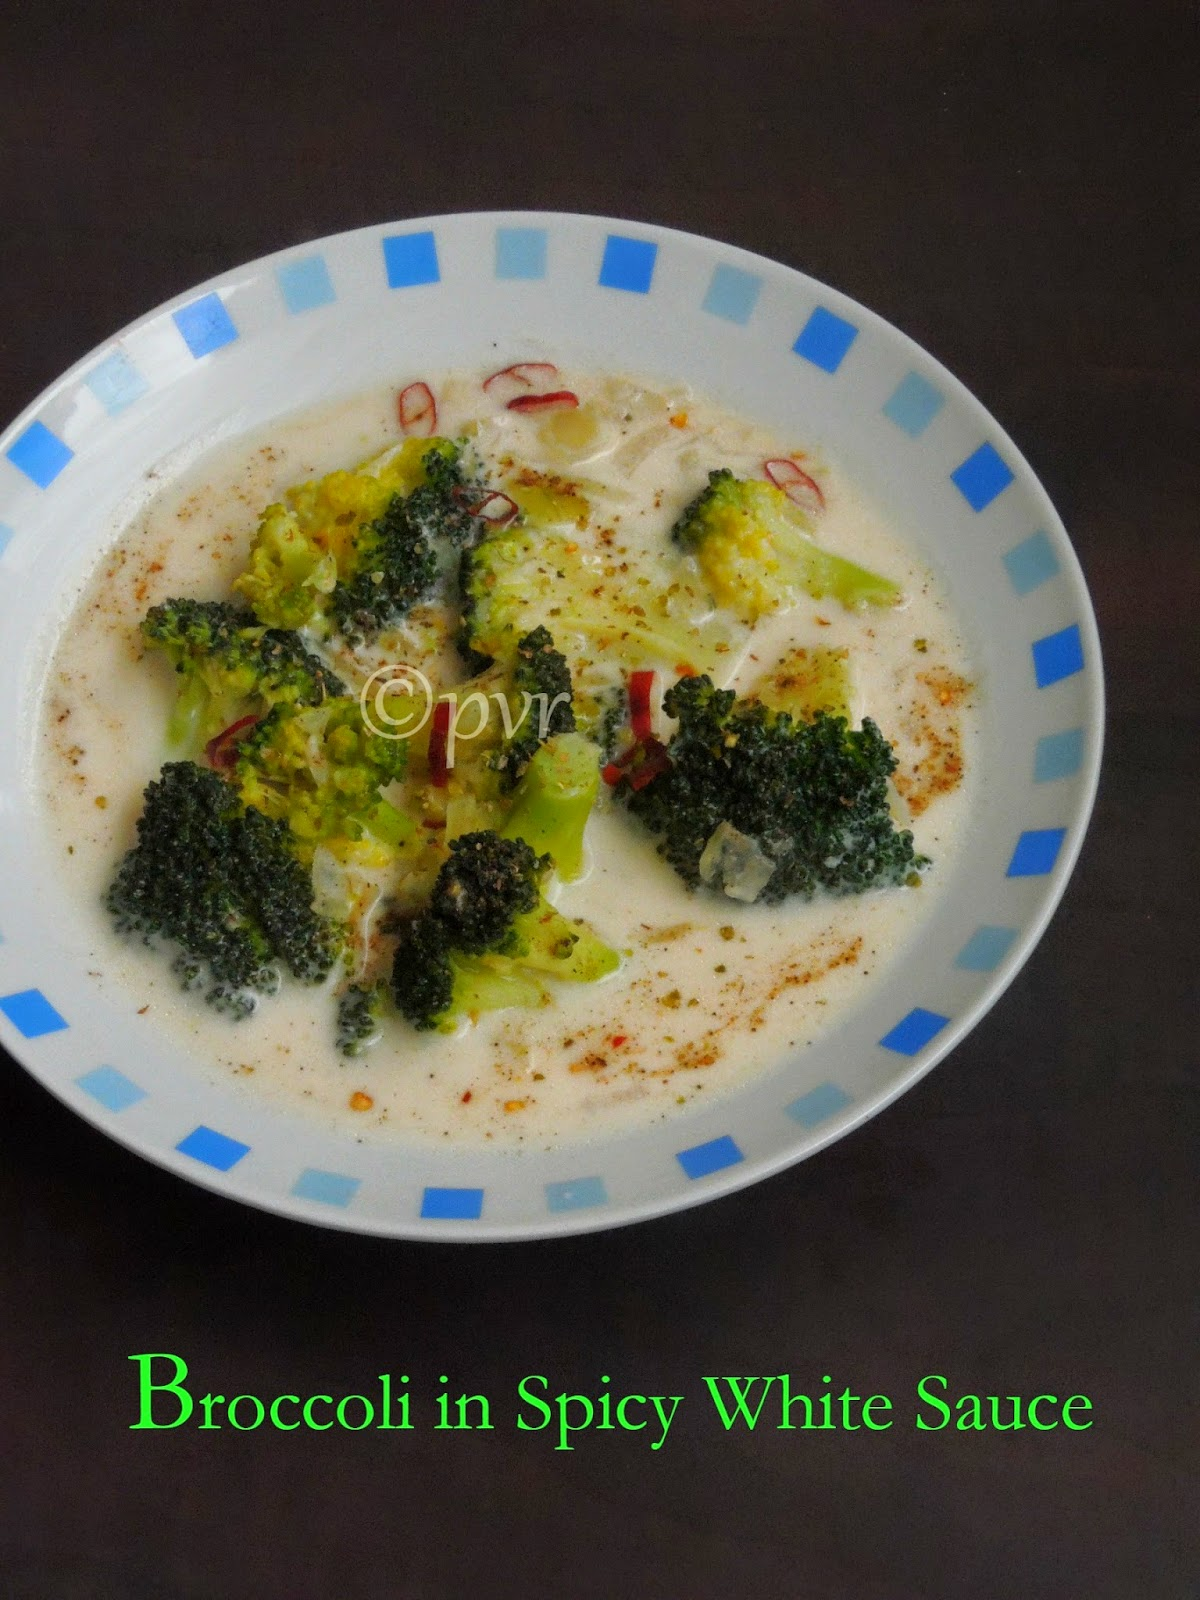 Broccoli in white sauce